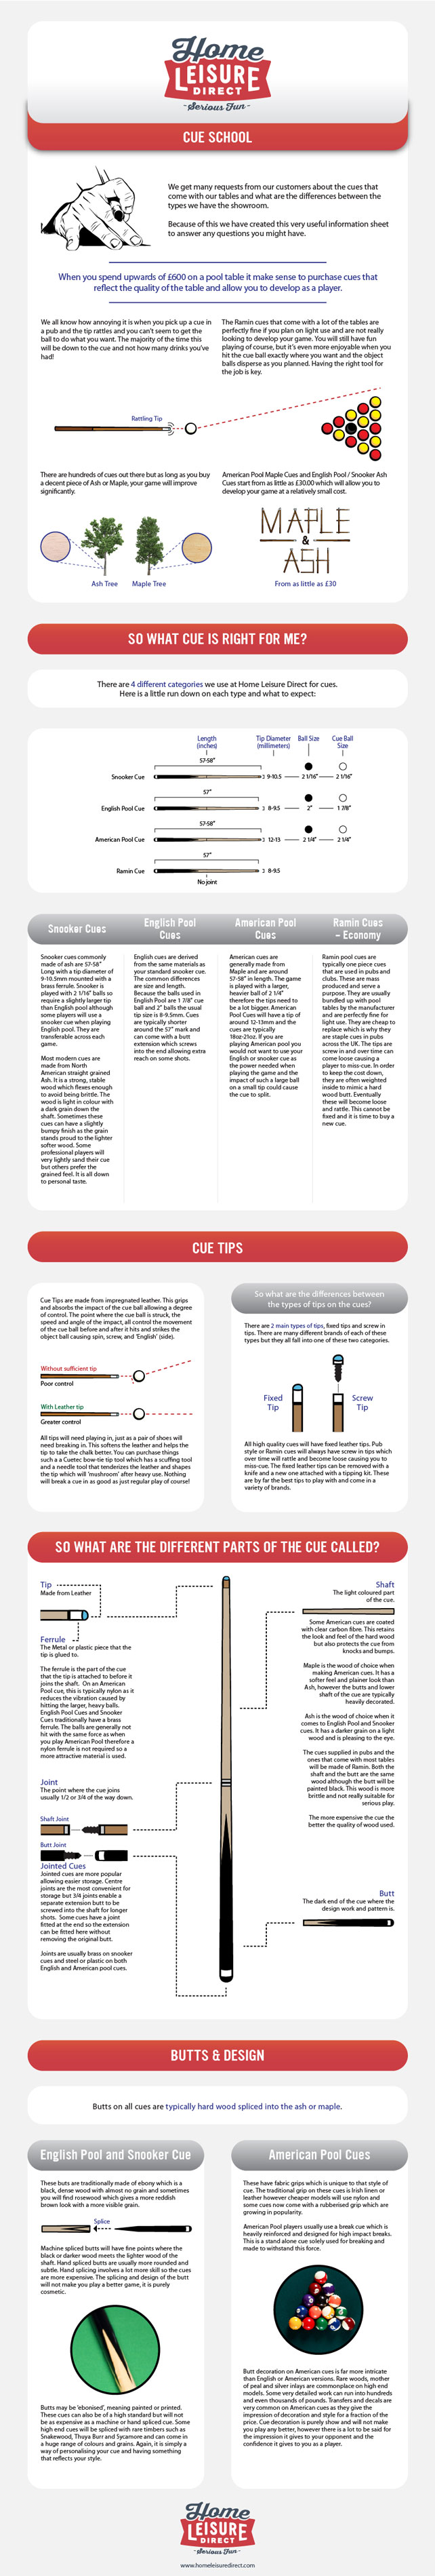 Difference Between A Pool Cue Amp Snooker Cue Infographic